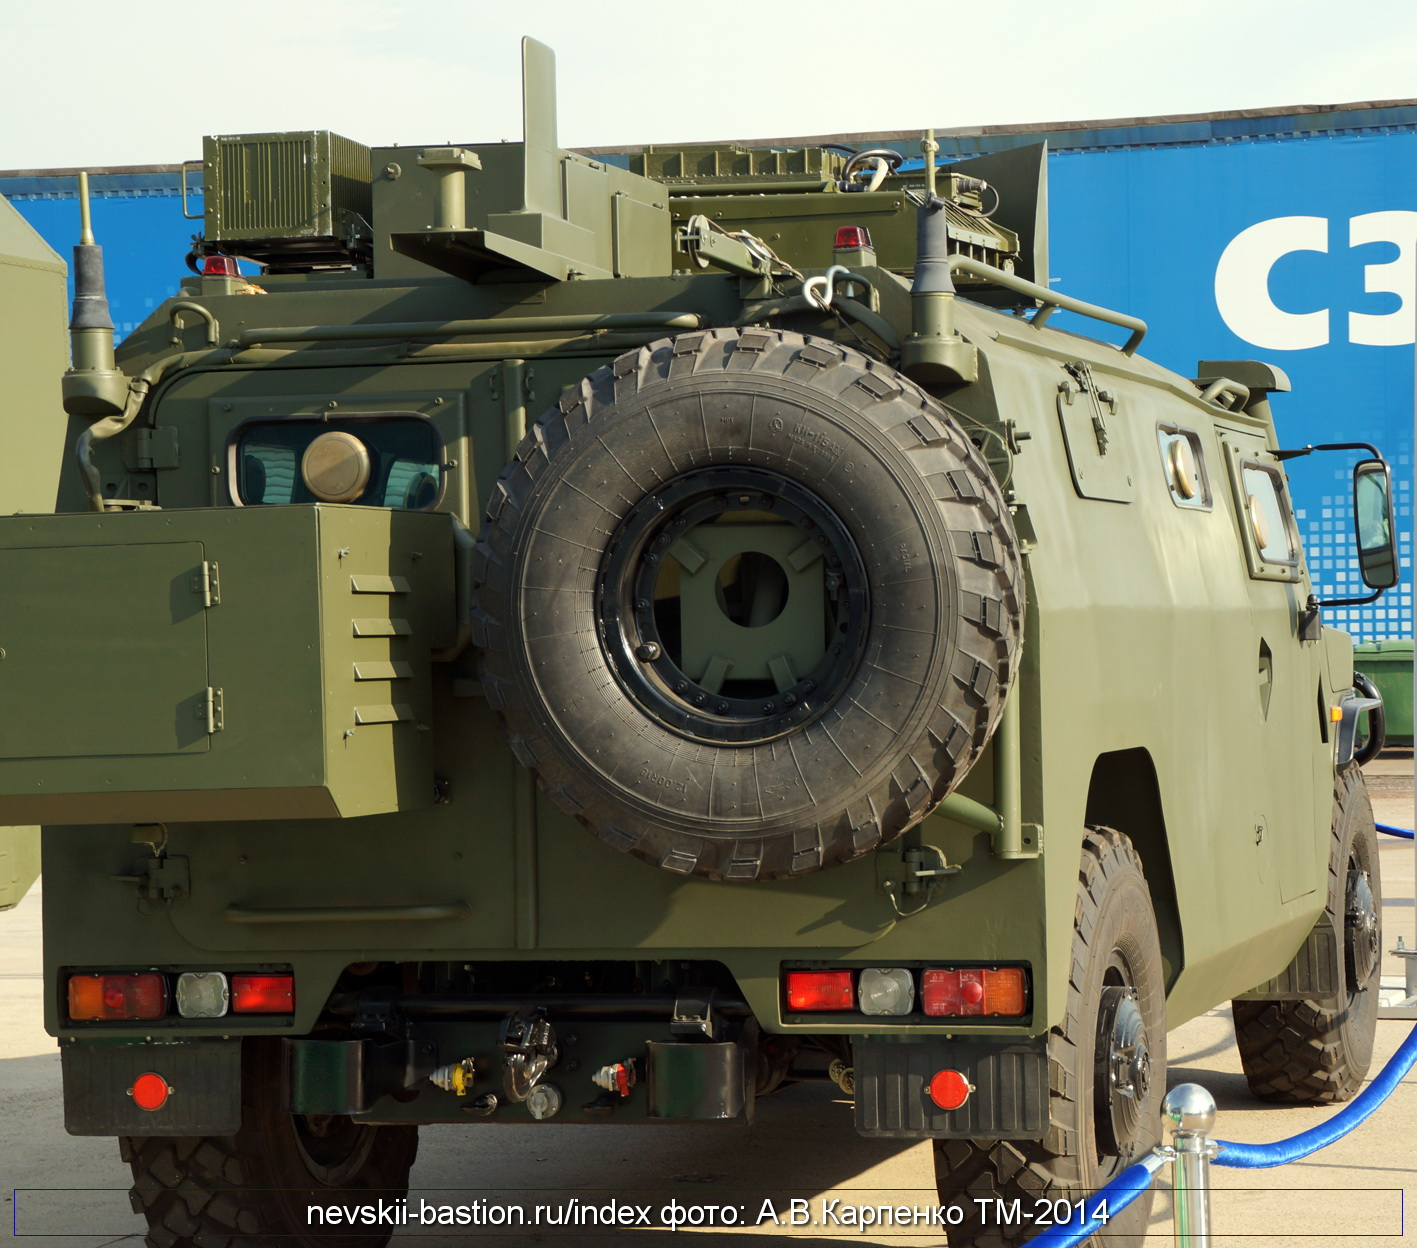 Russian Military Photos and Videos #2 - Page 5 TIGR_ZRK_08